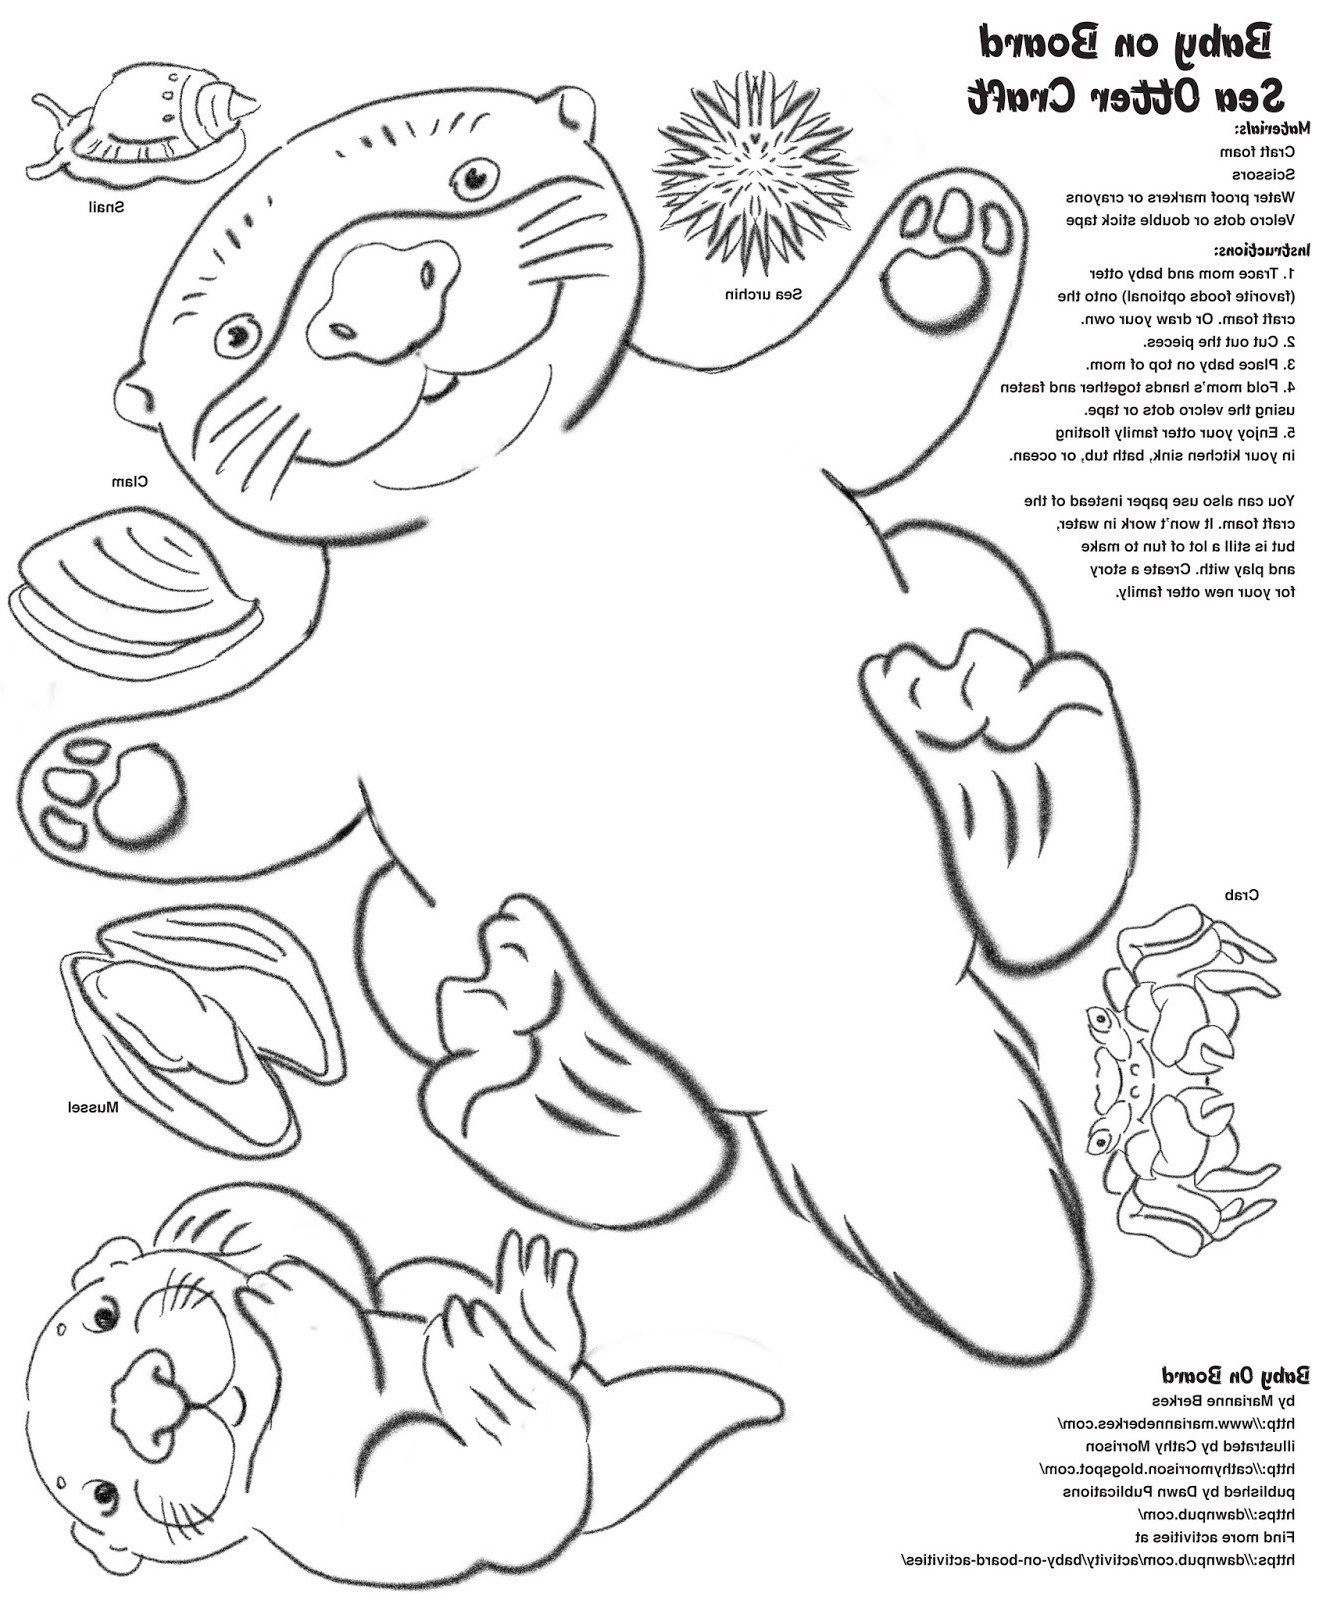 25 Great Image Of Otter Coloring Pages Davemelillo Com Otters Sea Otter Coloring Pages